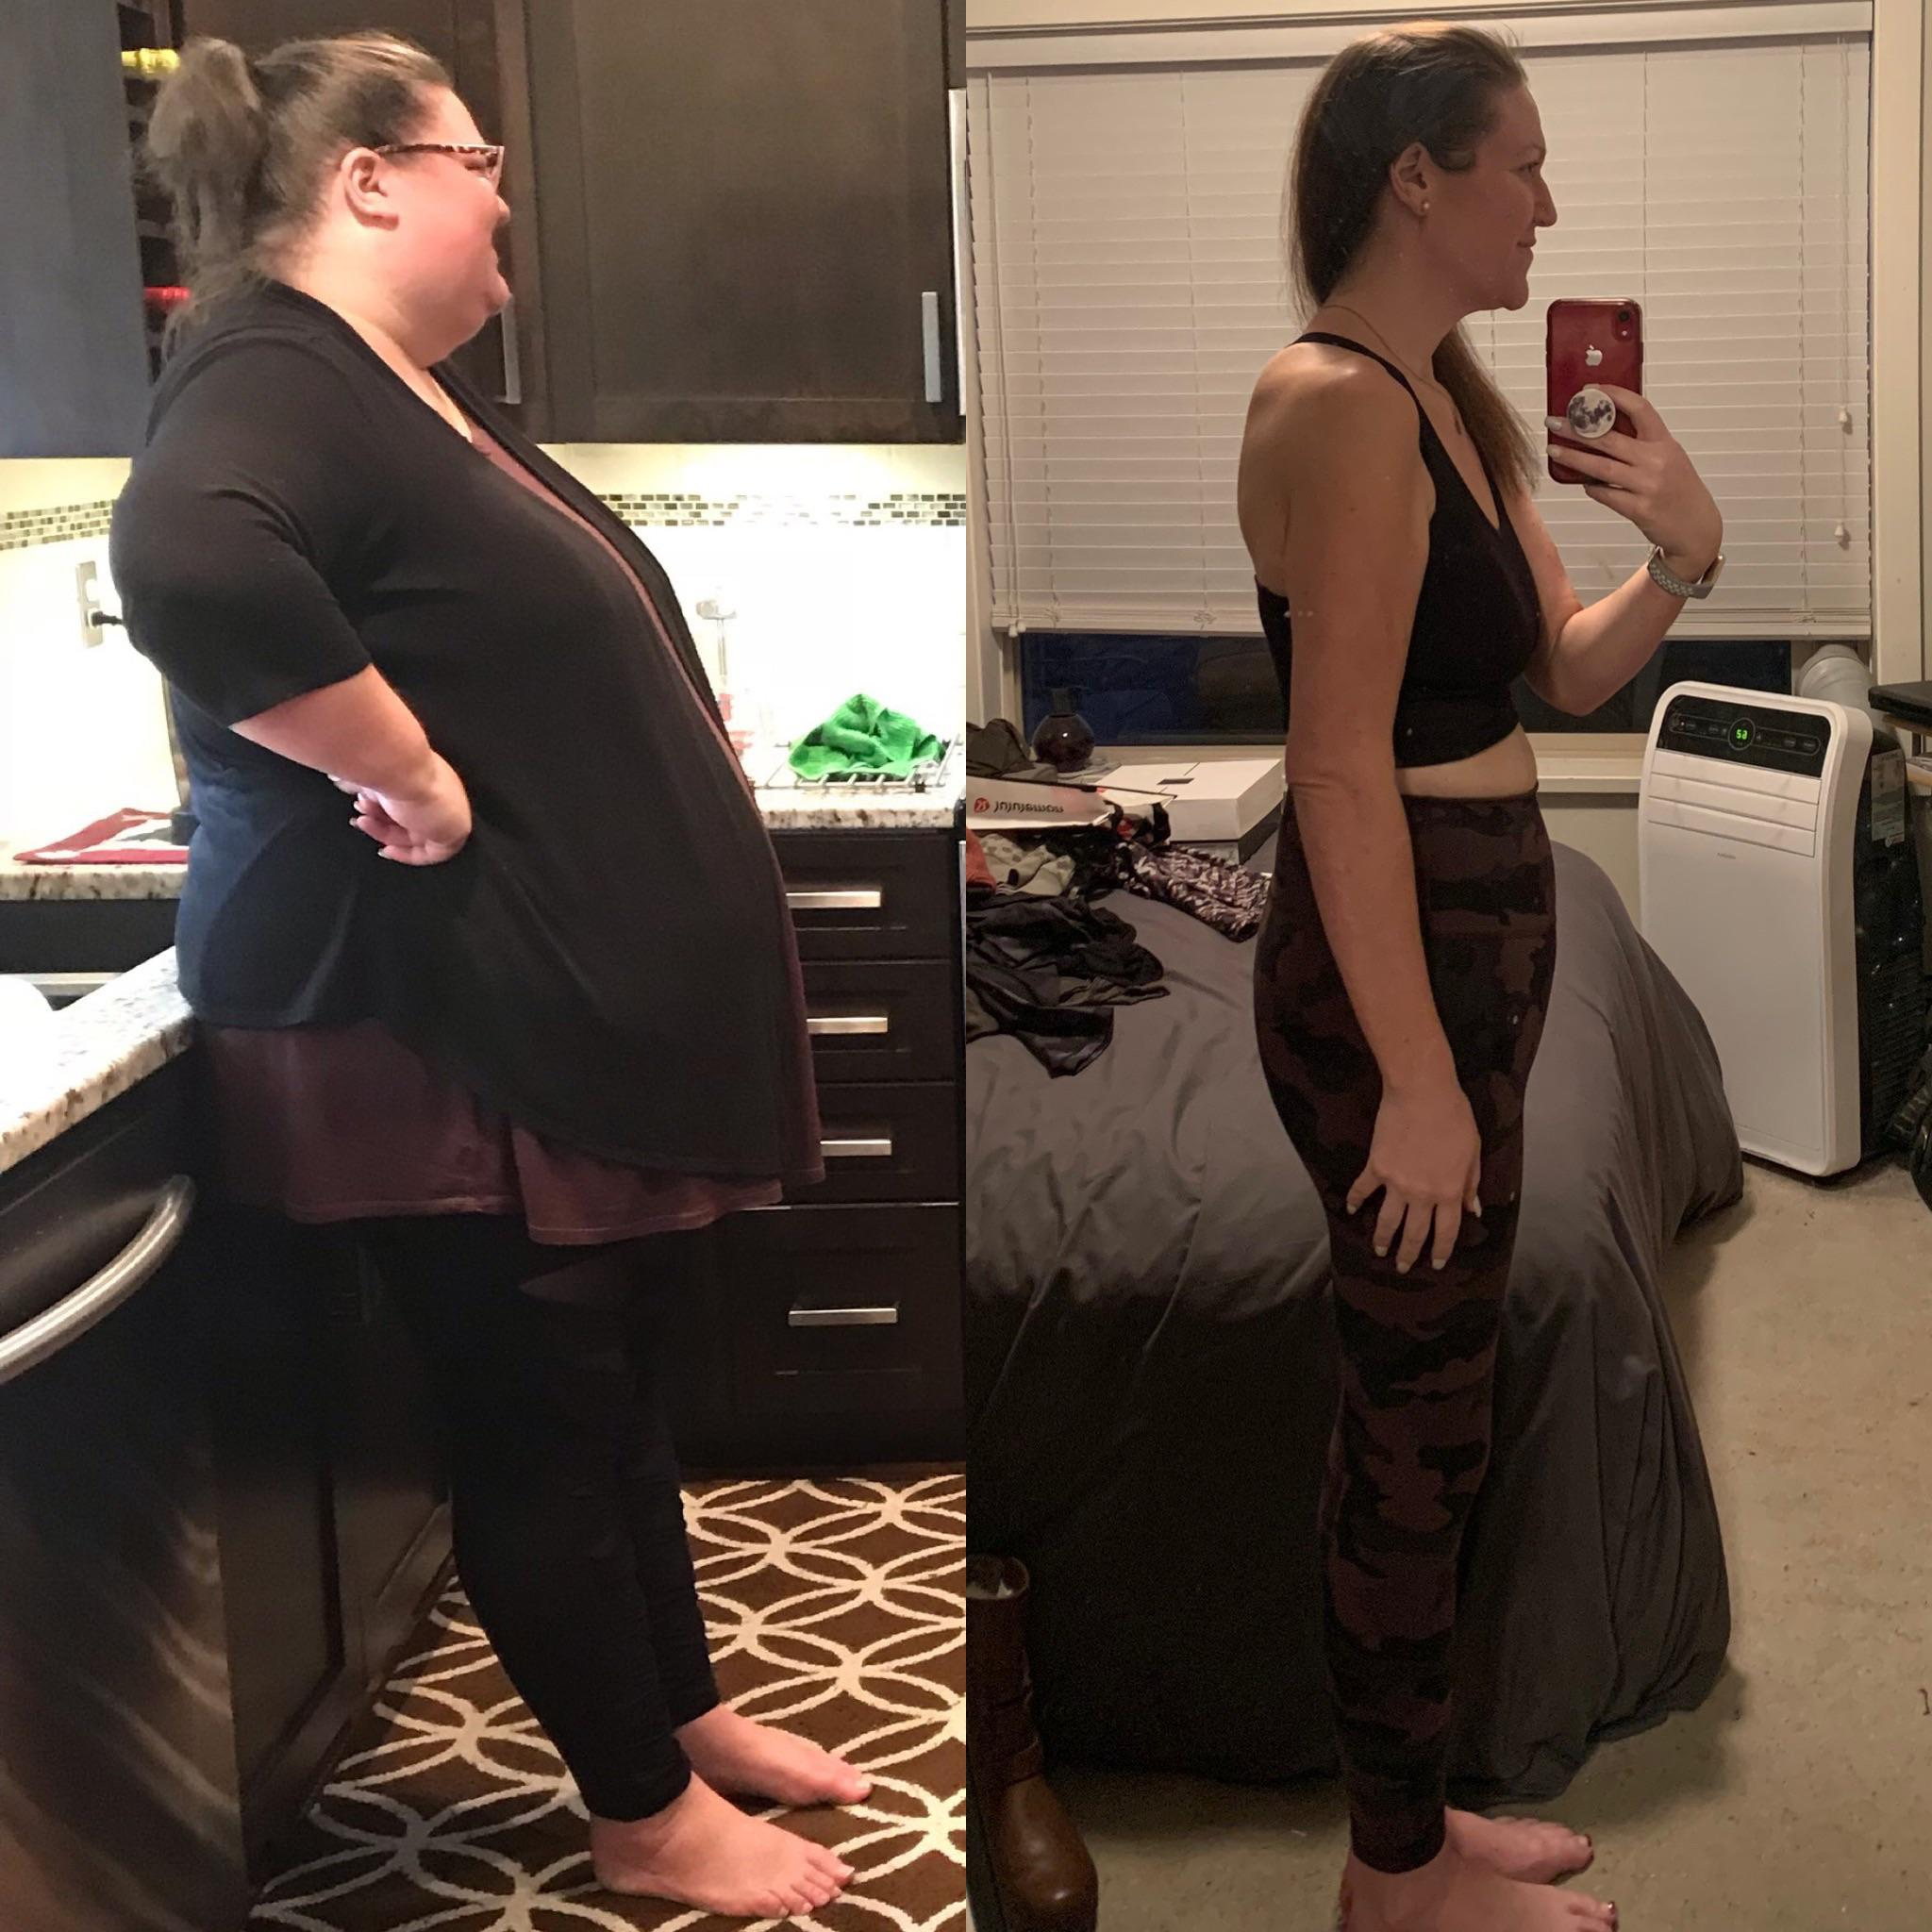 5 foot 9 Female 197 lbs Weight Loss 344 lbs to 147 lbs